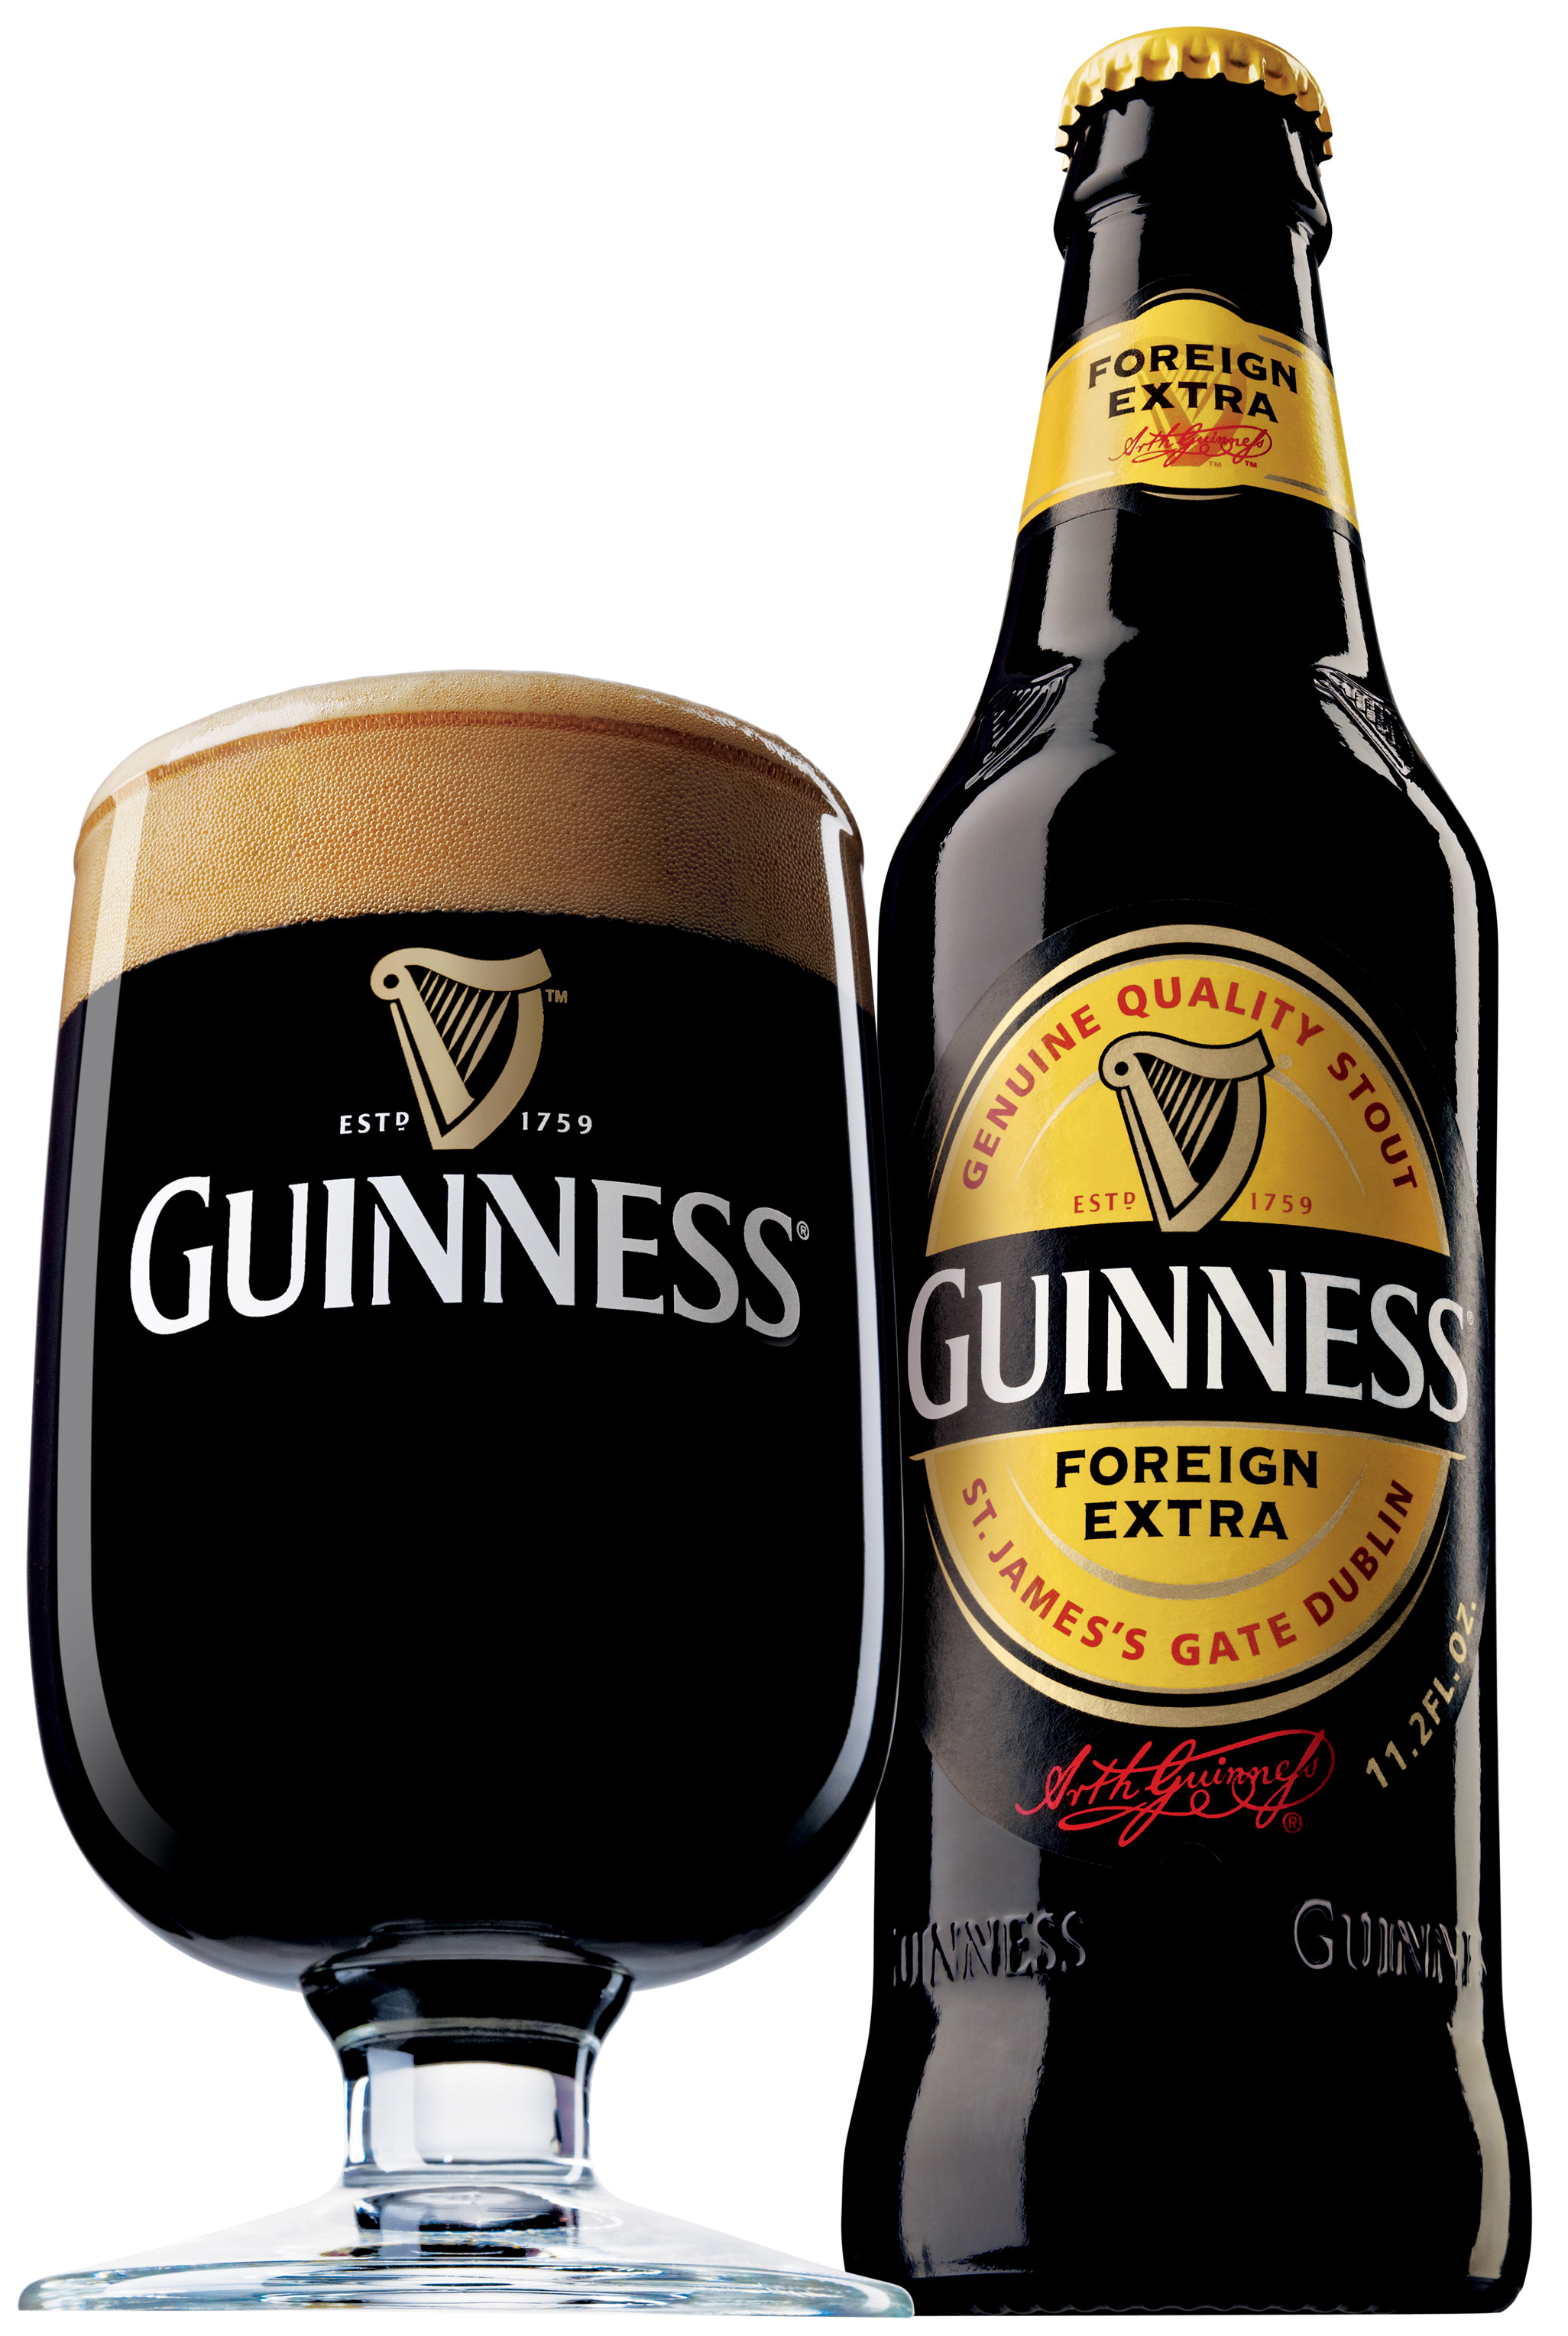 Res: 2052x3057, High Resolution Wallpaper | Guinness  px